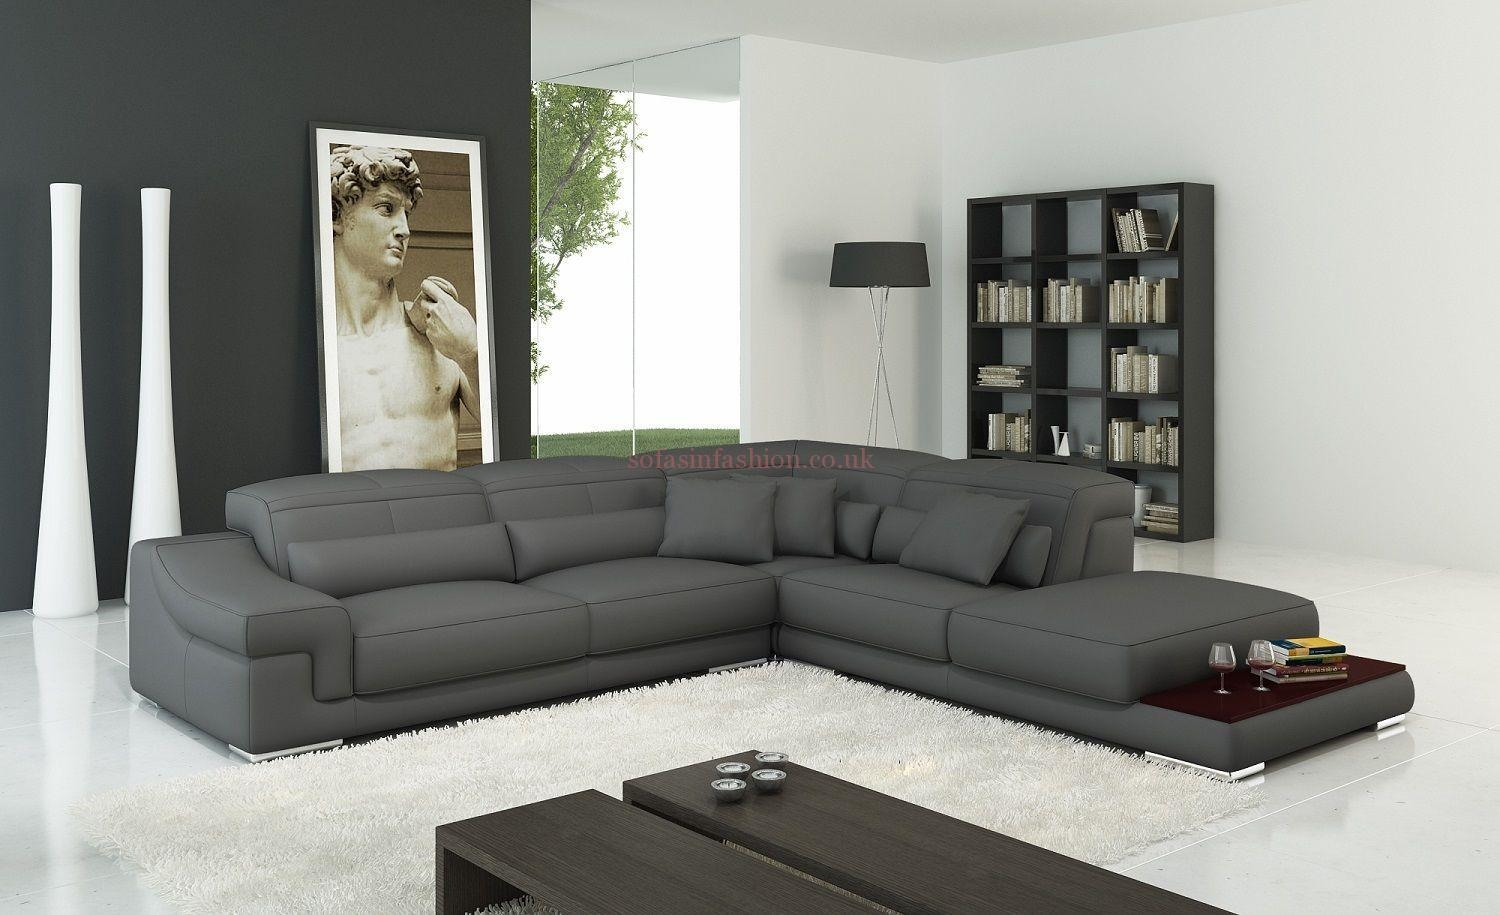 Cheap Leather Corner Recliner Sofas | Savae With Regard To Large Black Leather Corner Sofas (Image 7 of 22)